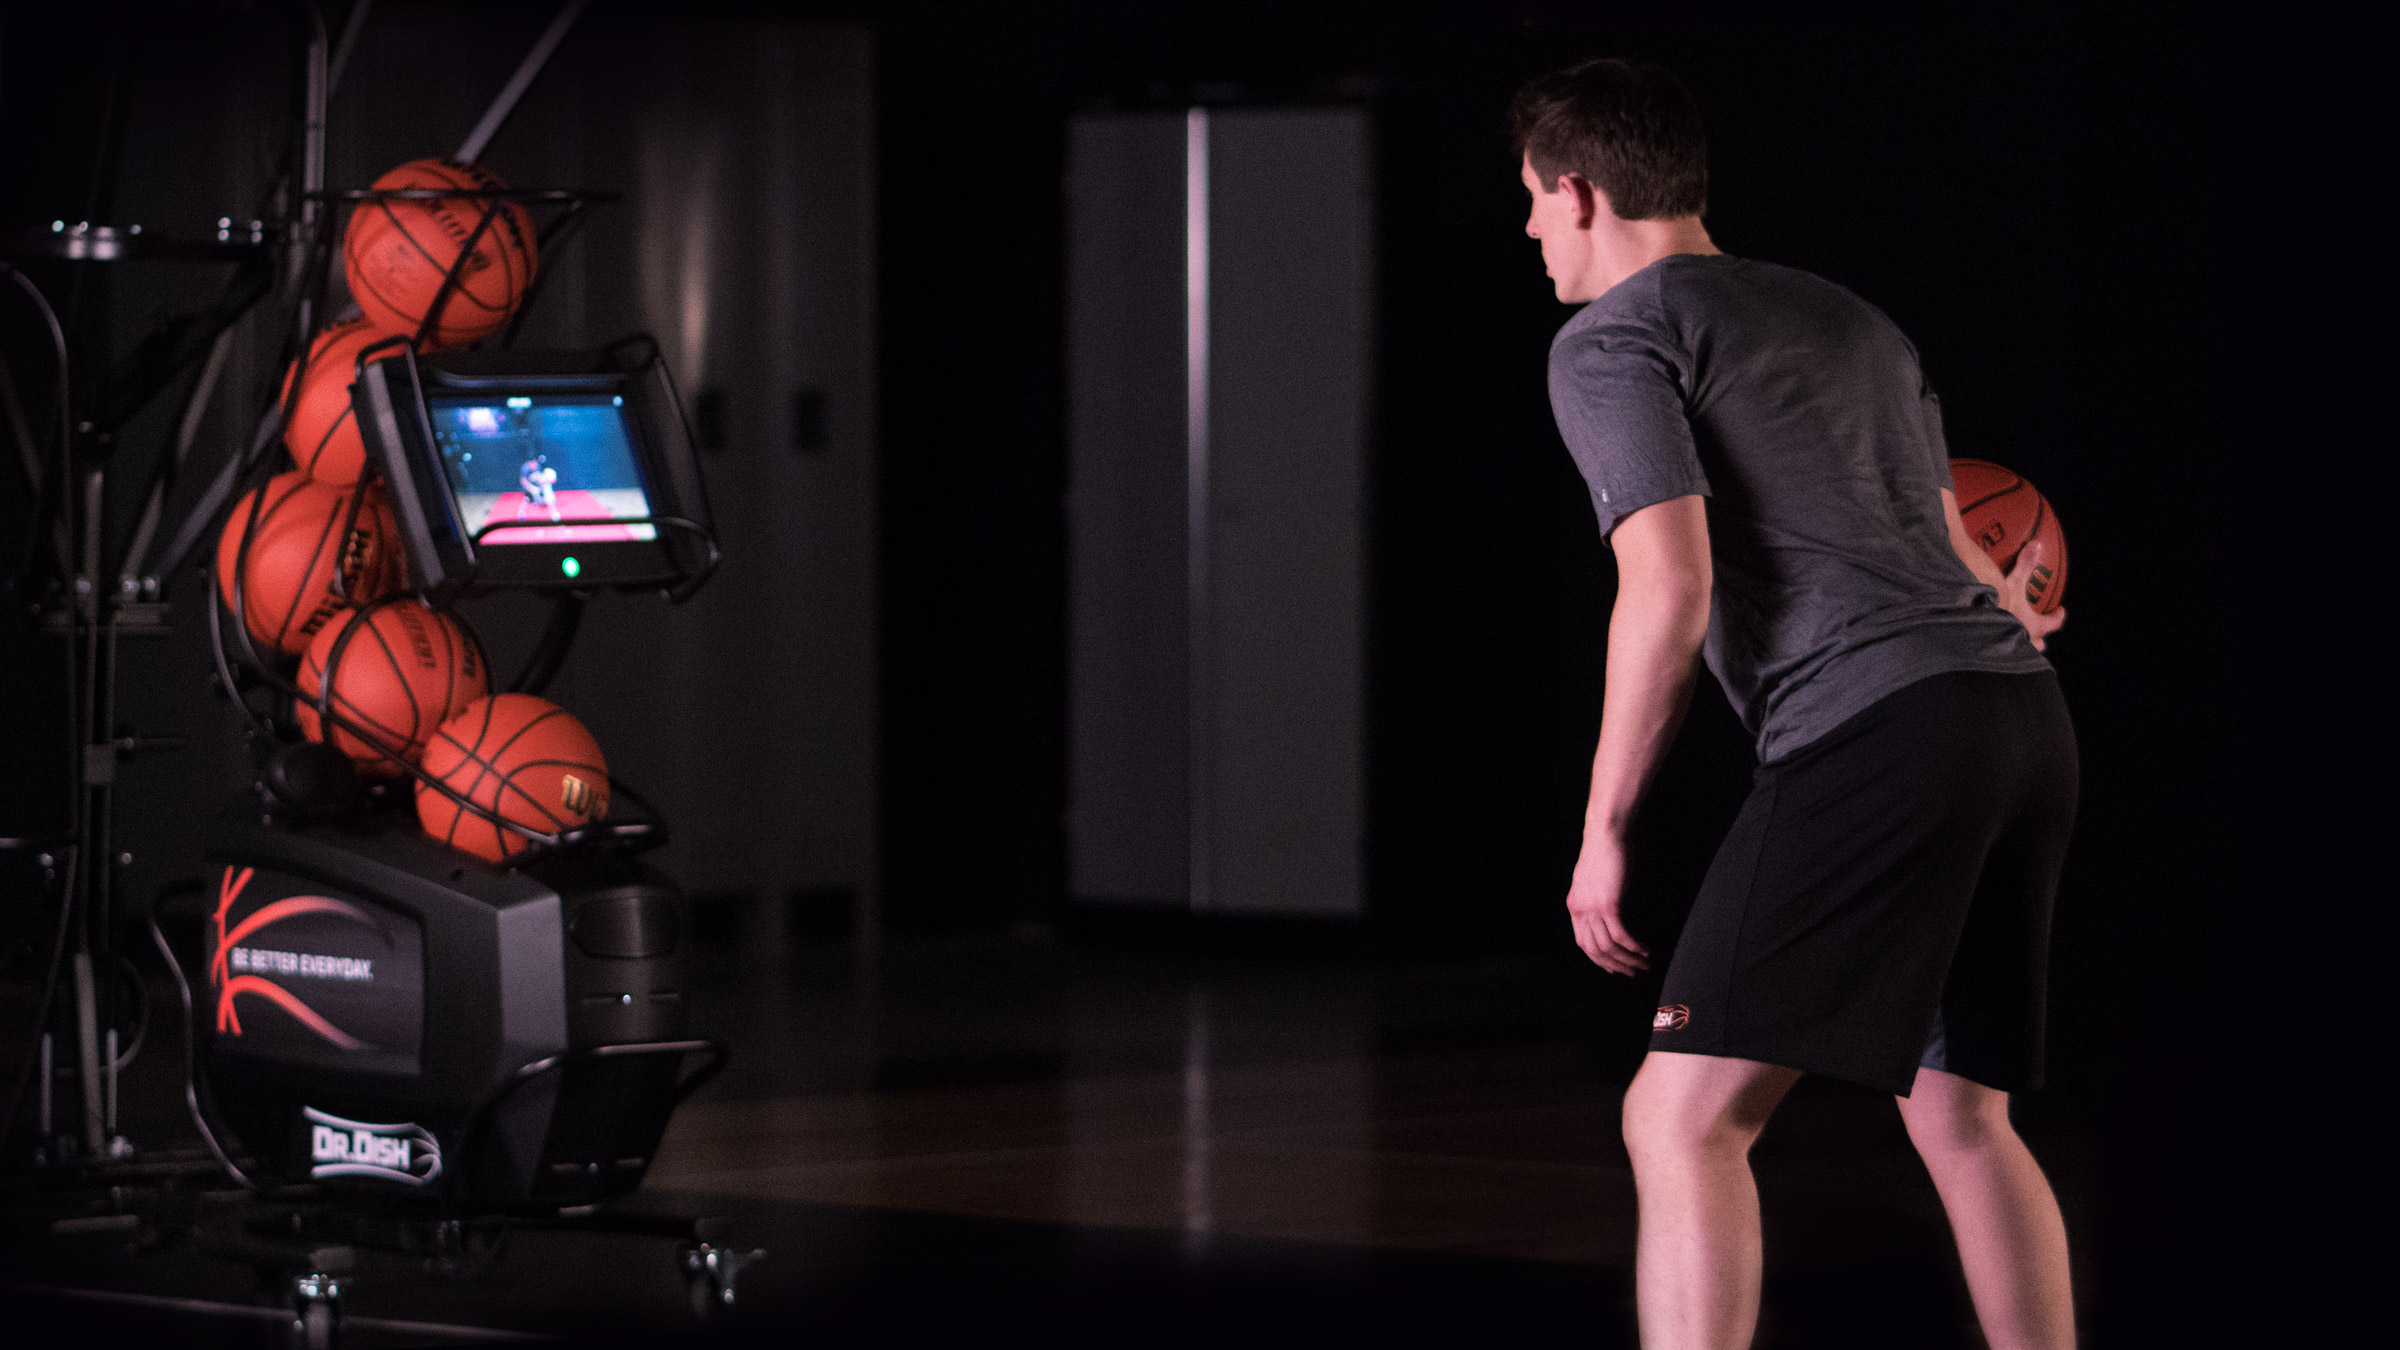 Basketball training with a Dr. Dish CT shooting machine